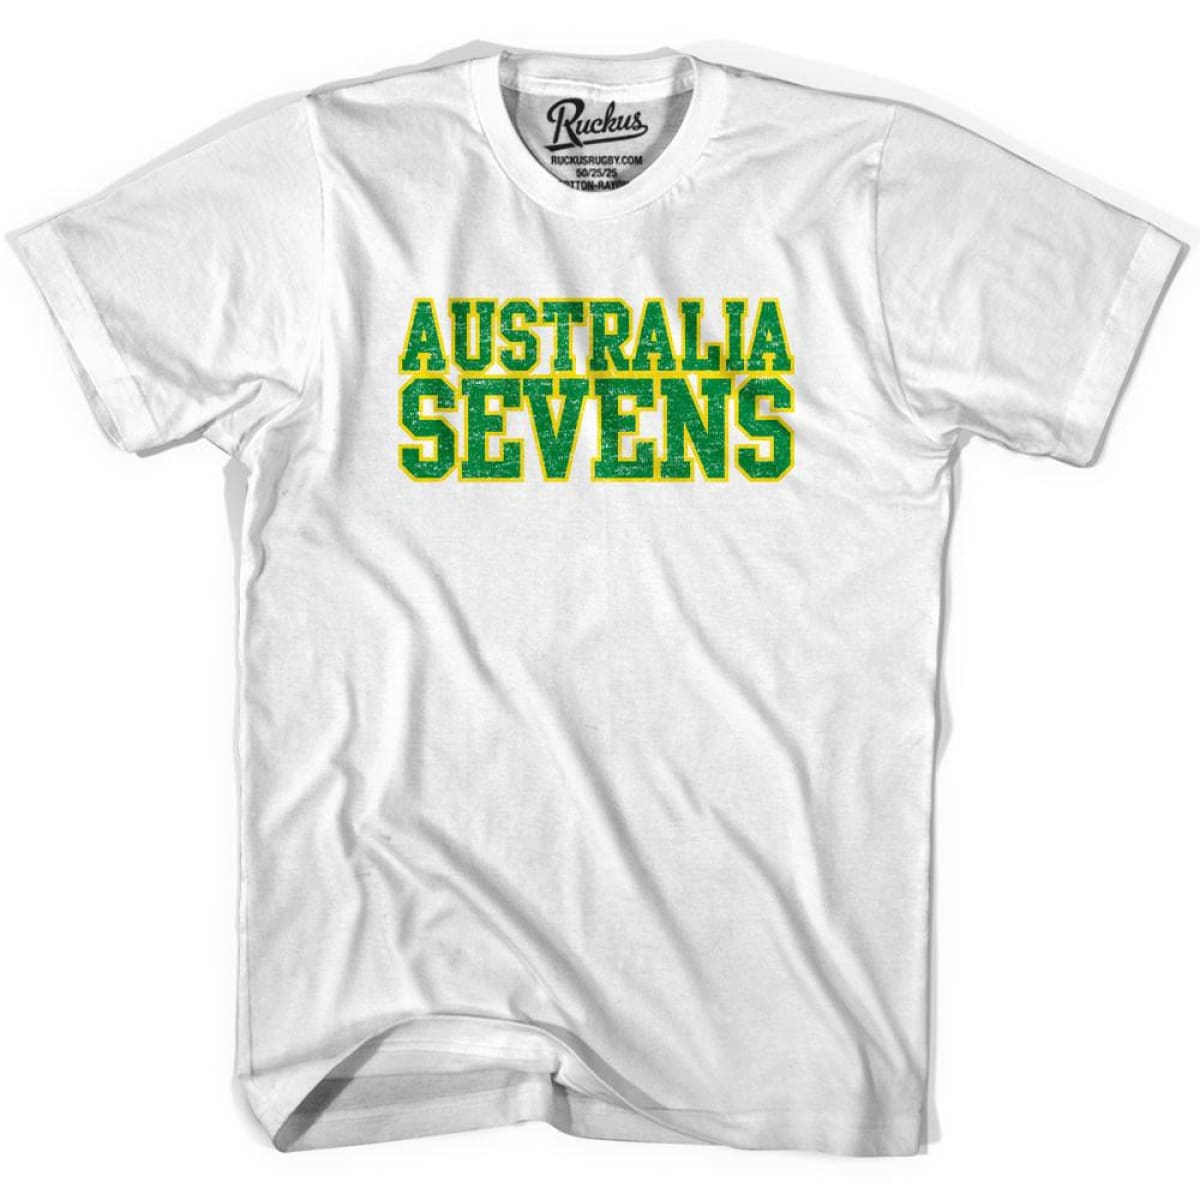 Australia Seven Rugby T-shirt - Cool Grey / Youth X-Small - Rugby T-shirt